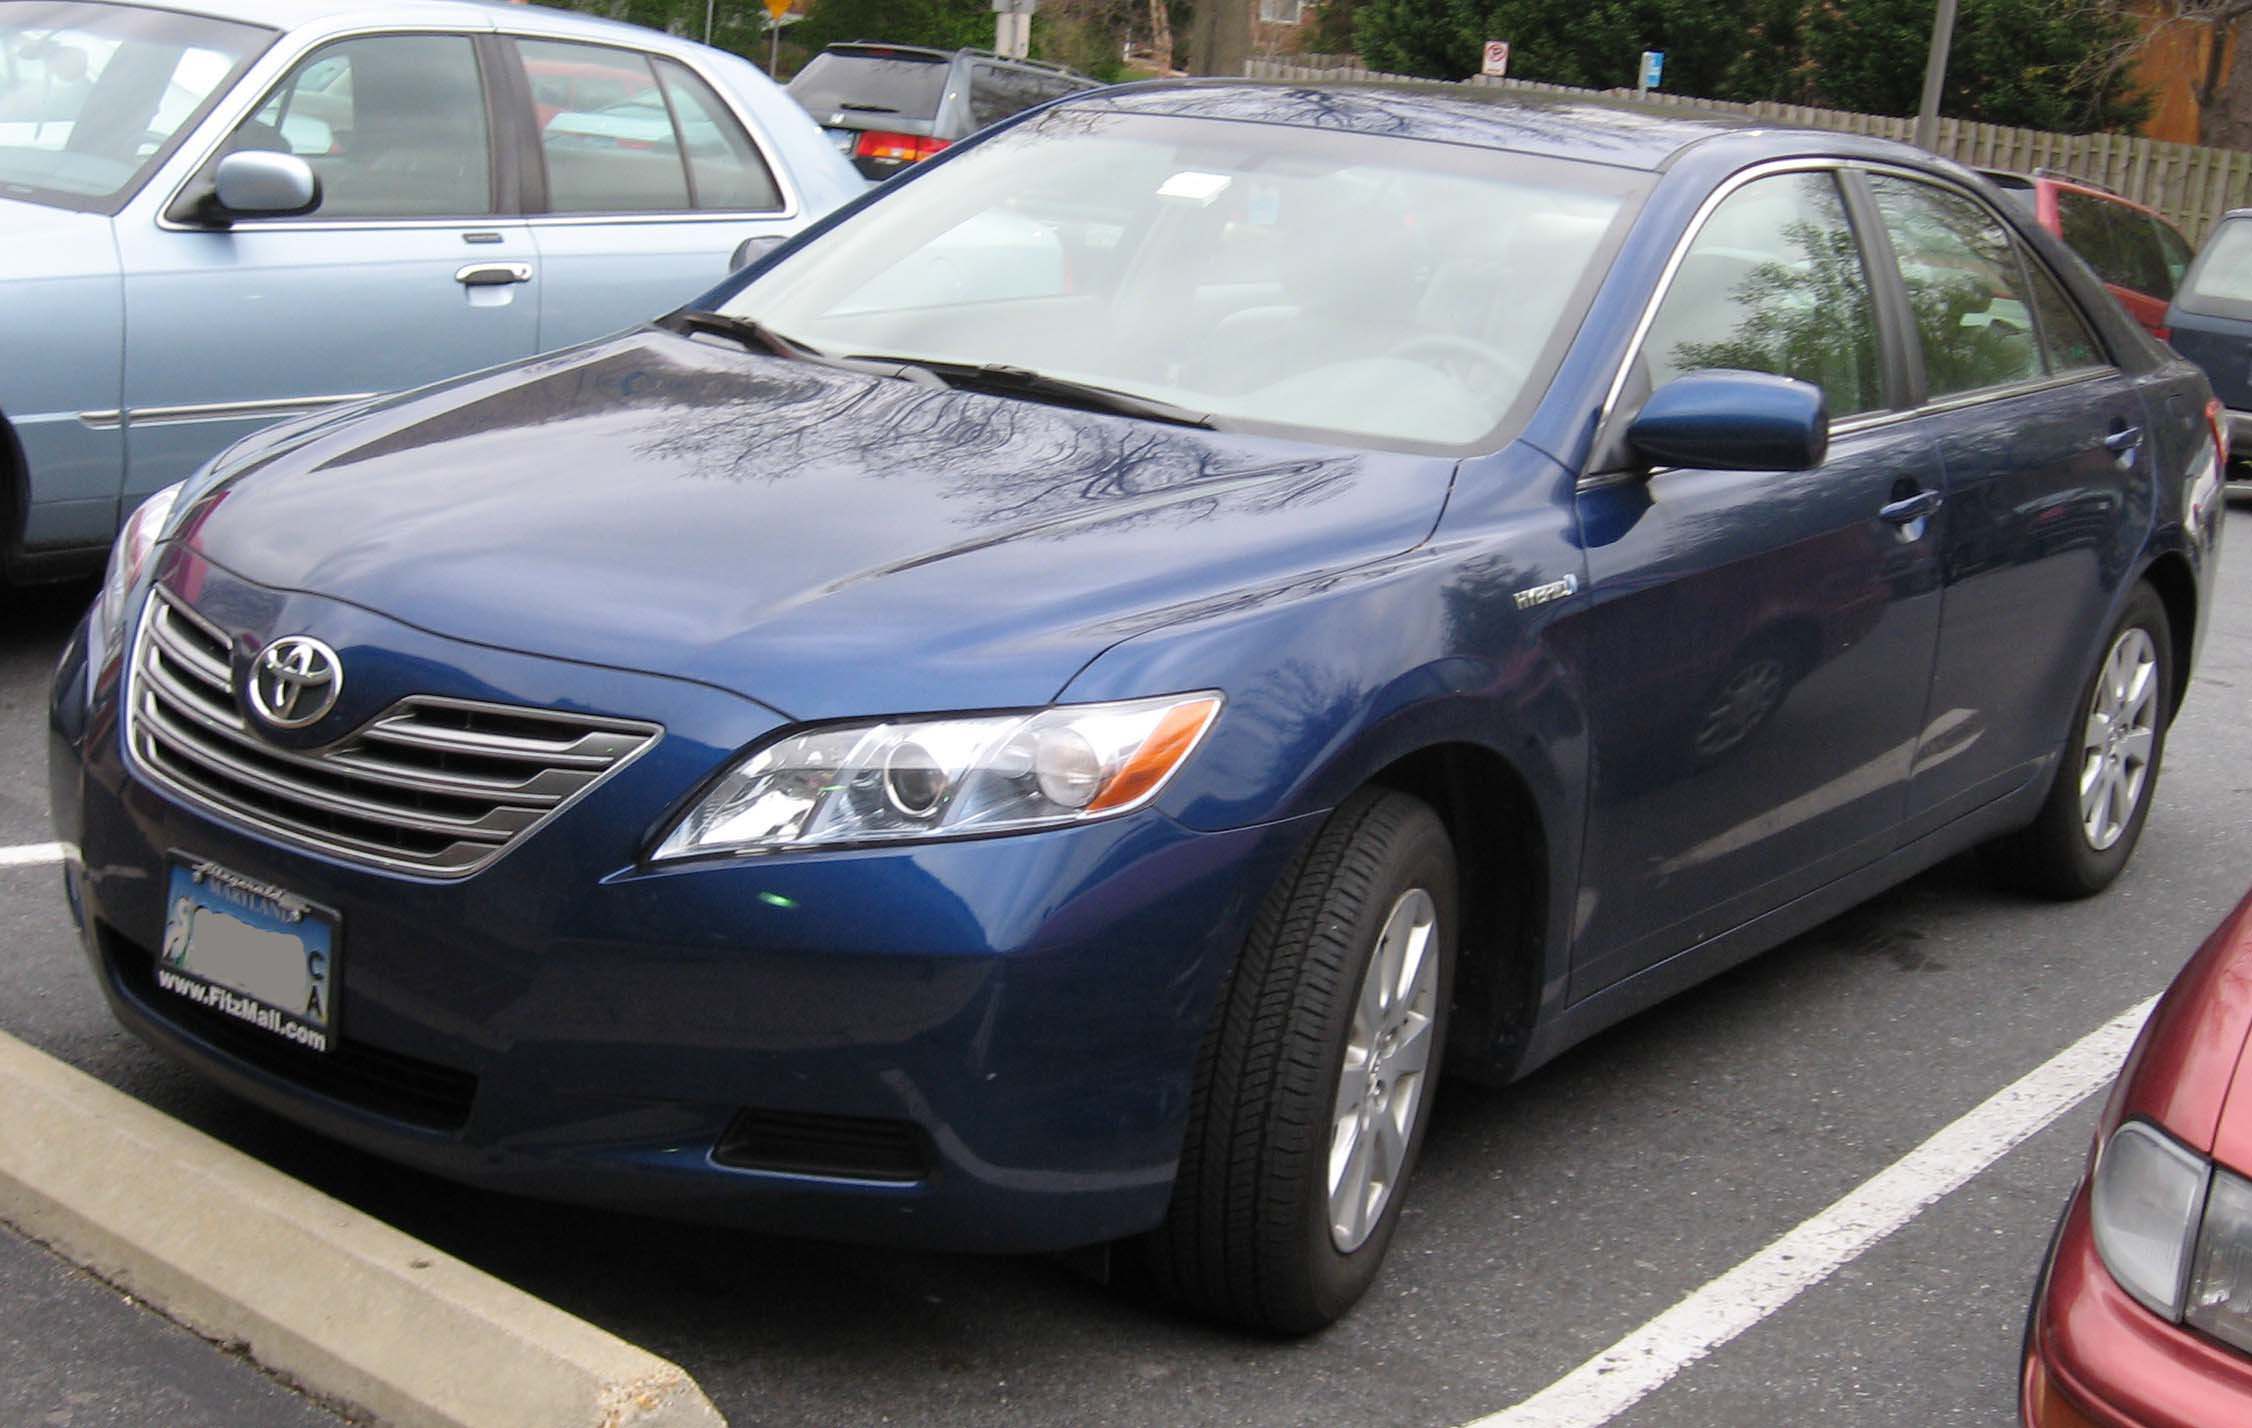 Used Cars For Sale Near Me >> File:2007-Toyota-Camry-Hybrid-1.jpg - Wikimedia Commons